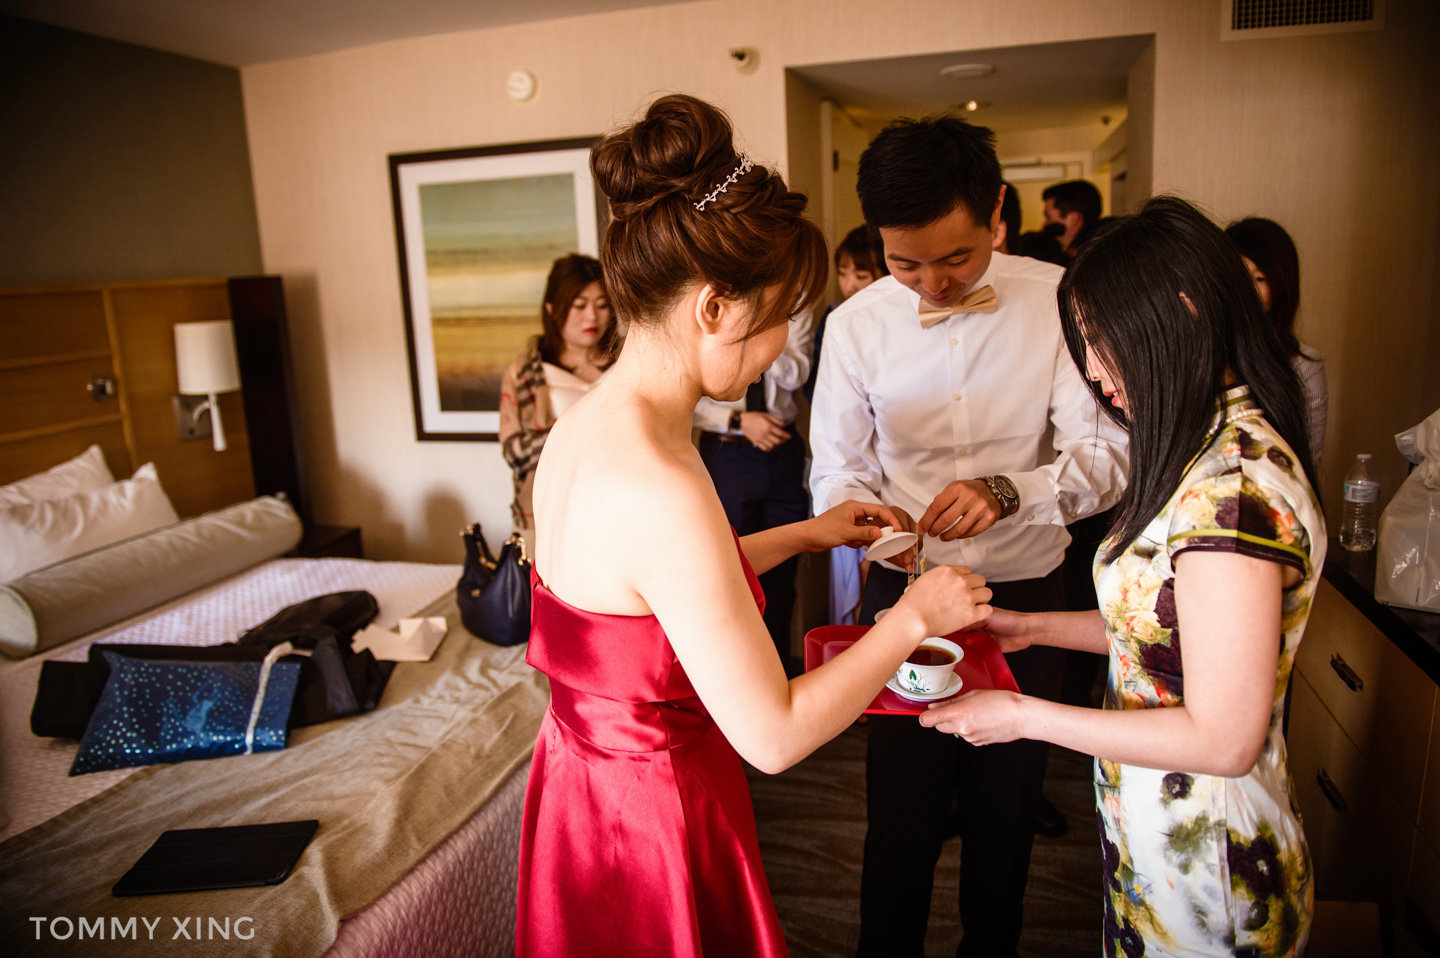 Los Angeles Wedding Photographer 洛杉矶婚礼婚纱摄影师 Tommy Xing-53.JPG